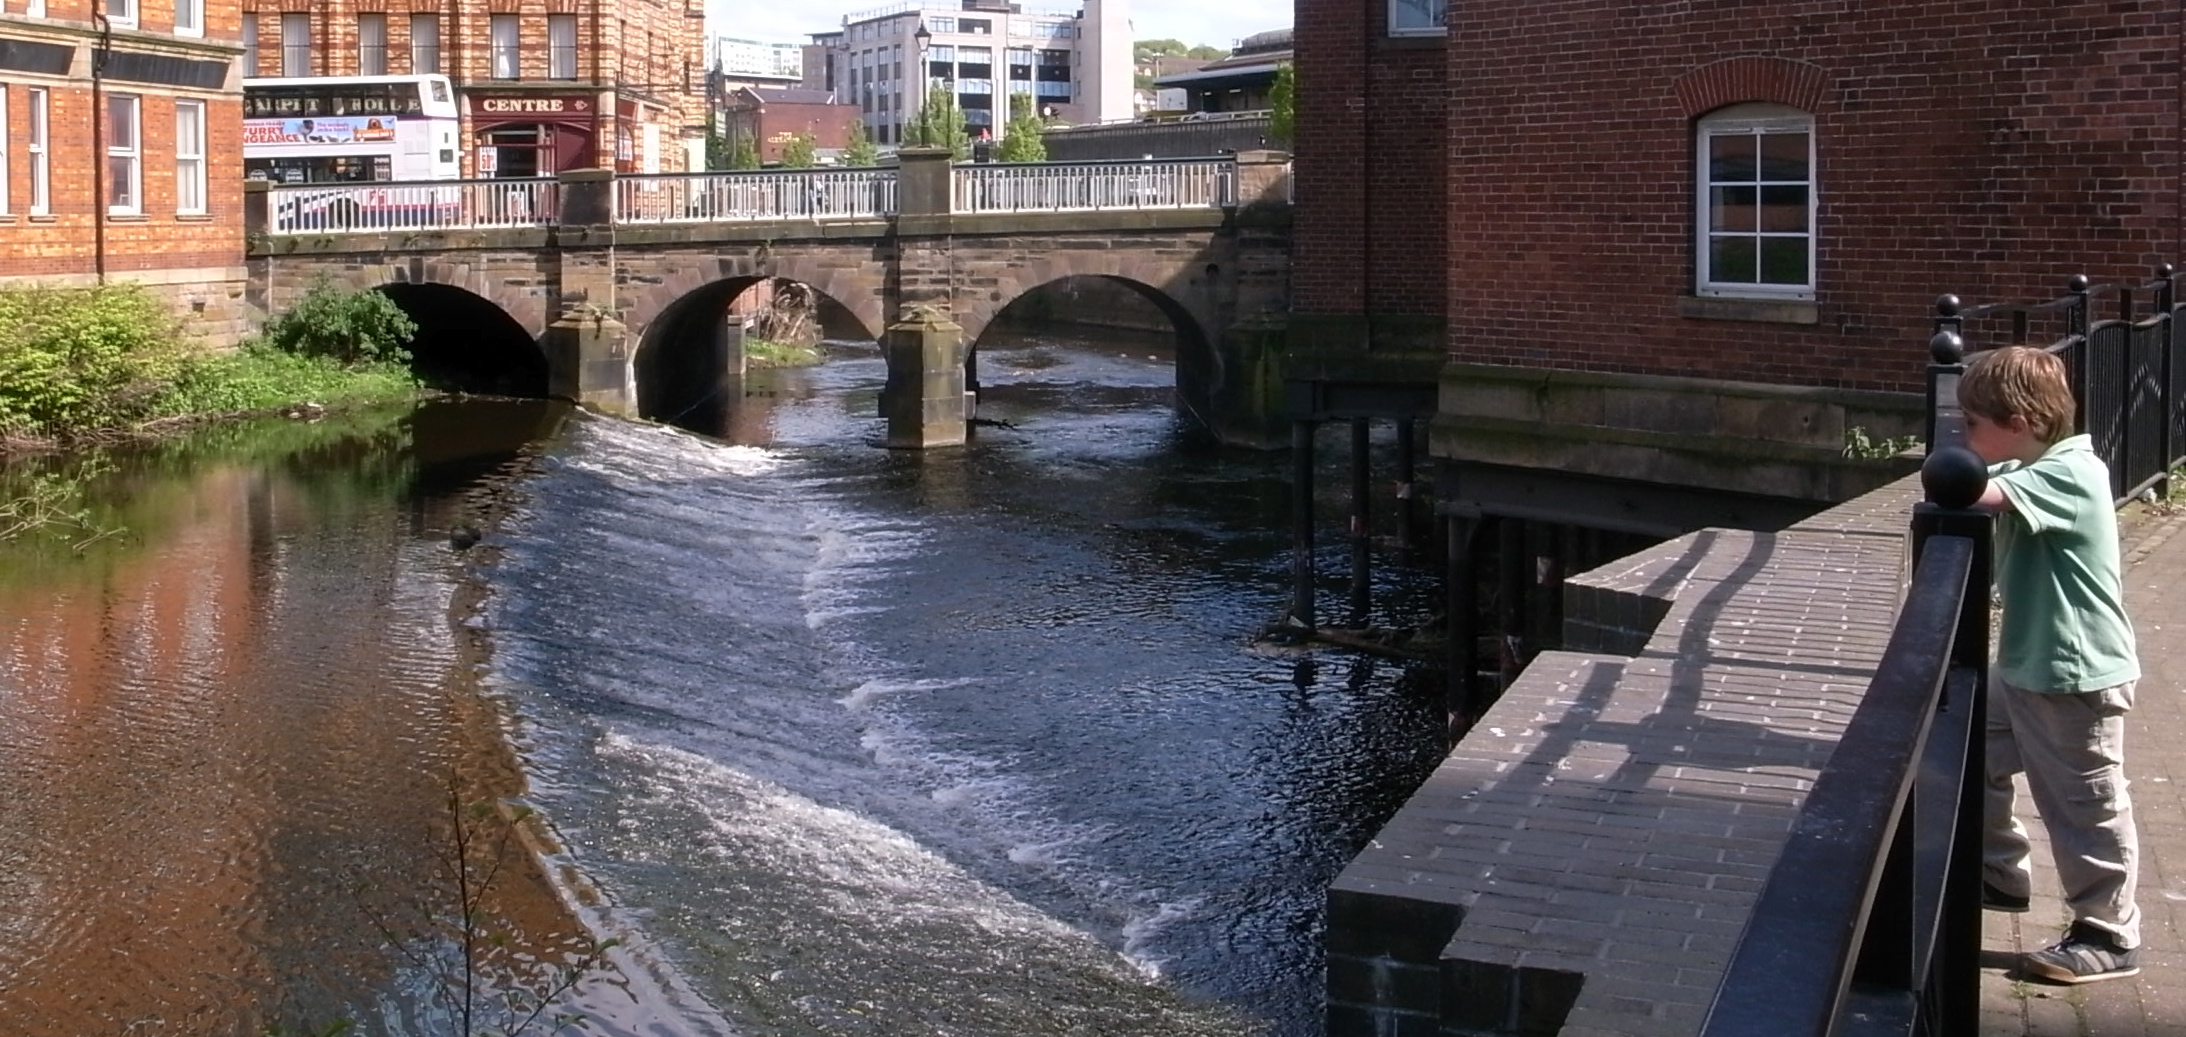 The River Don, Sheffield